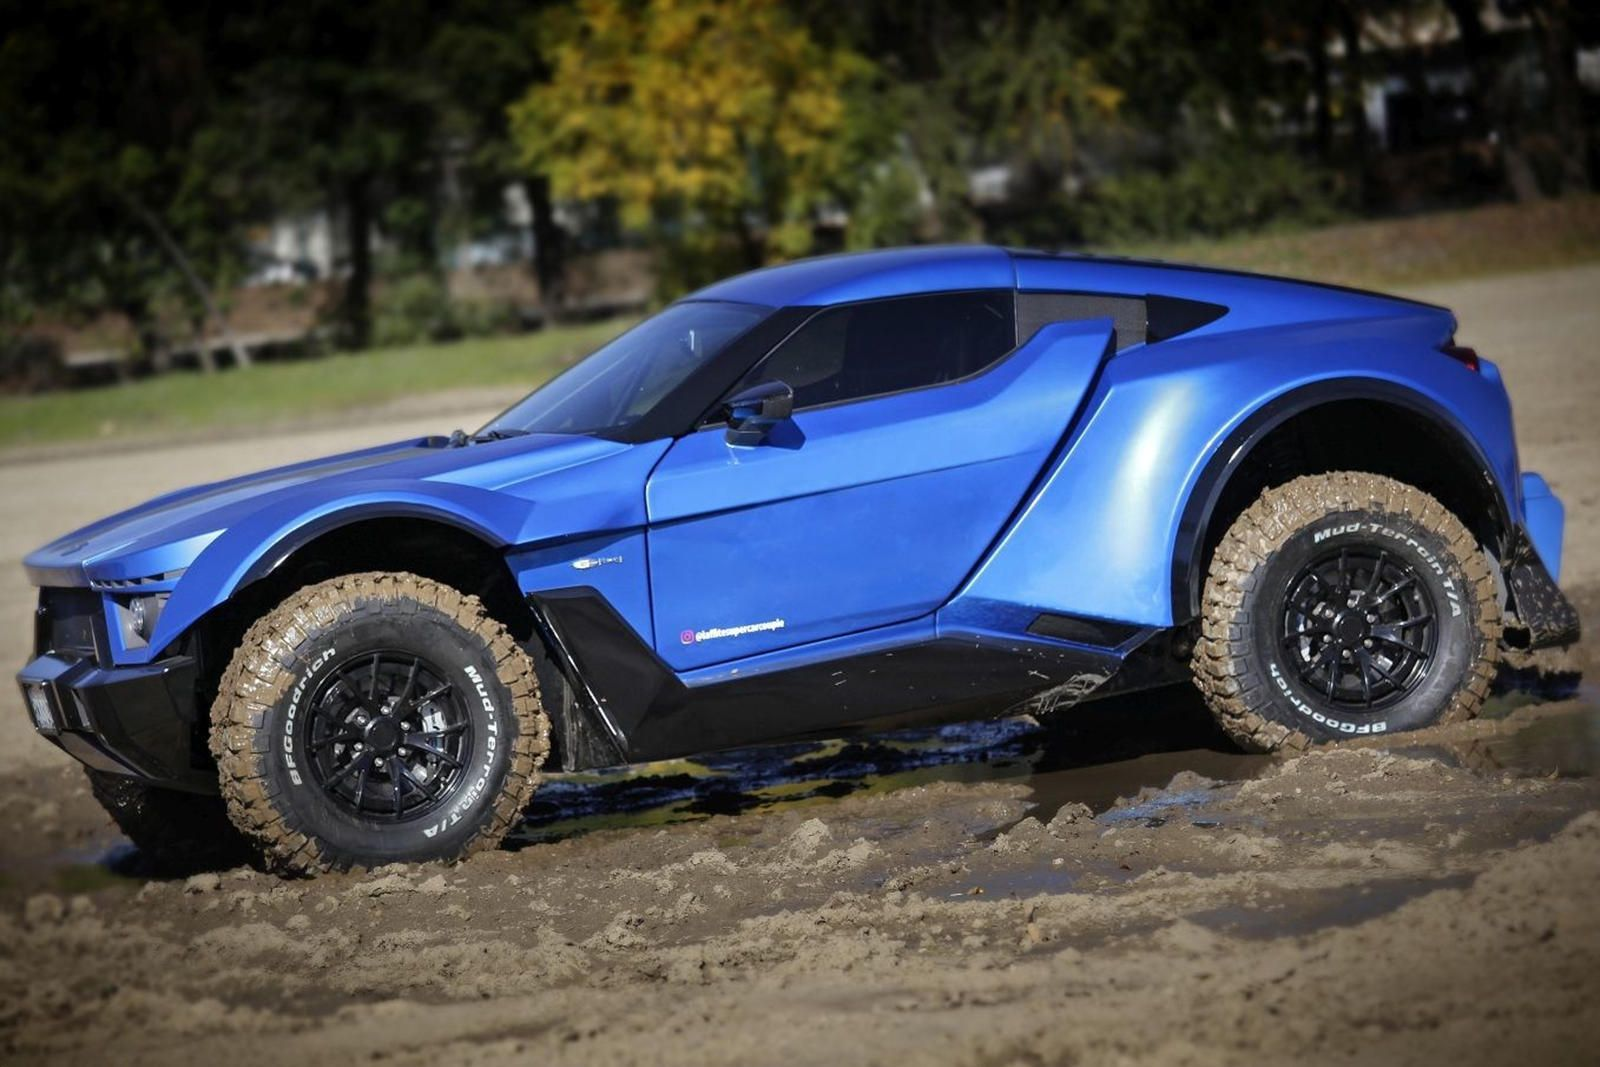 Insane Off Roading Supercars For Those Who Don T Want To Take In The Scenery When Going Off The Beaten Path In 2020 Supercar Design Super Cars Offroad